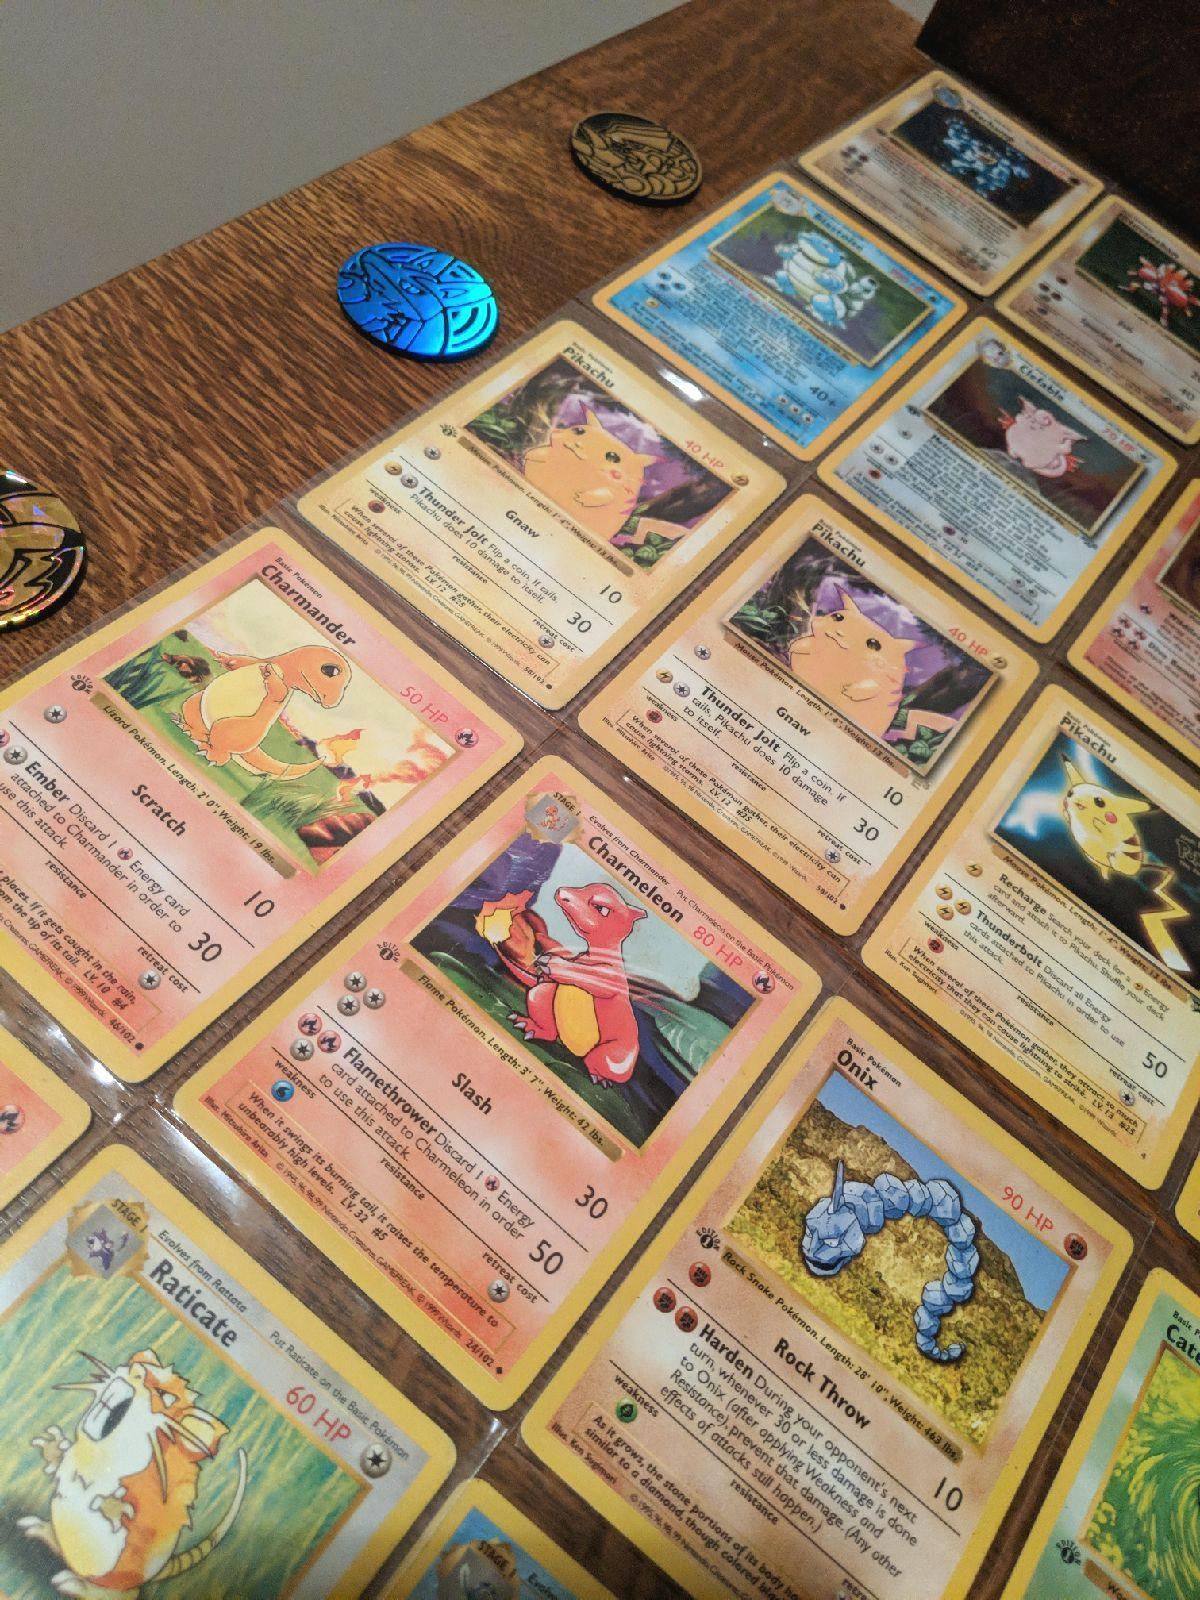 Hey all for sale is an insane vintage wotc pokemon card